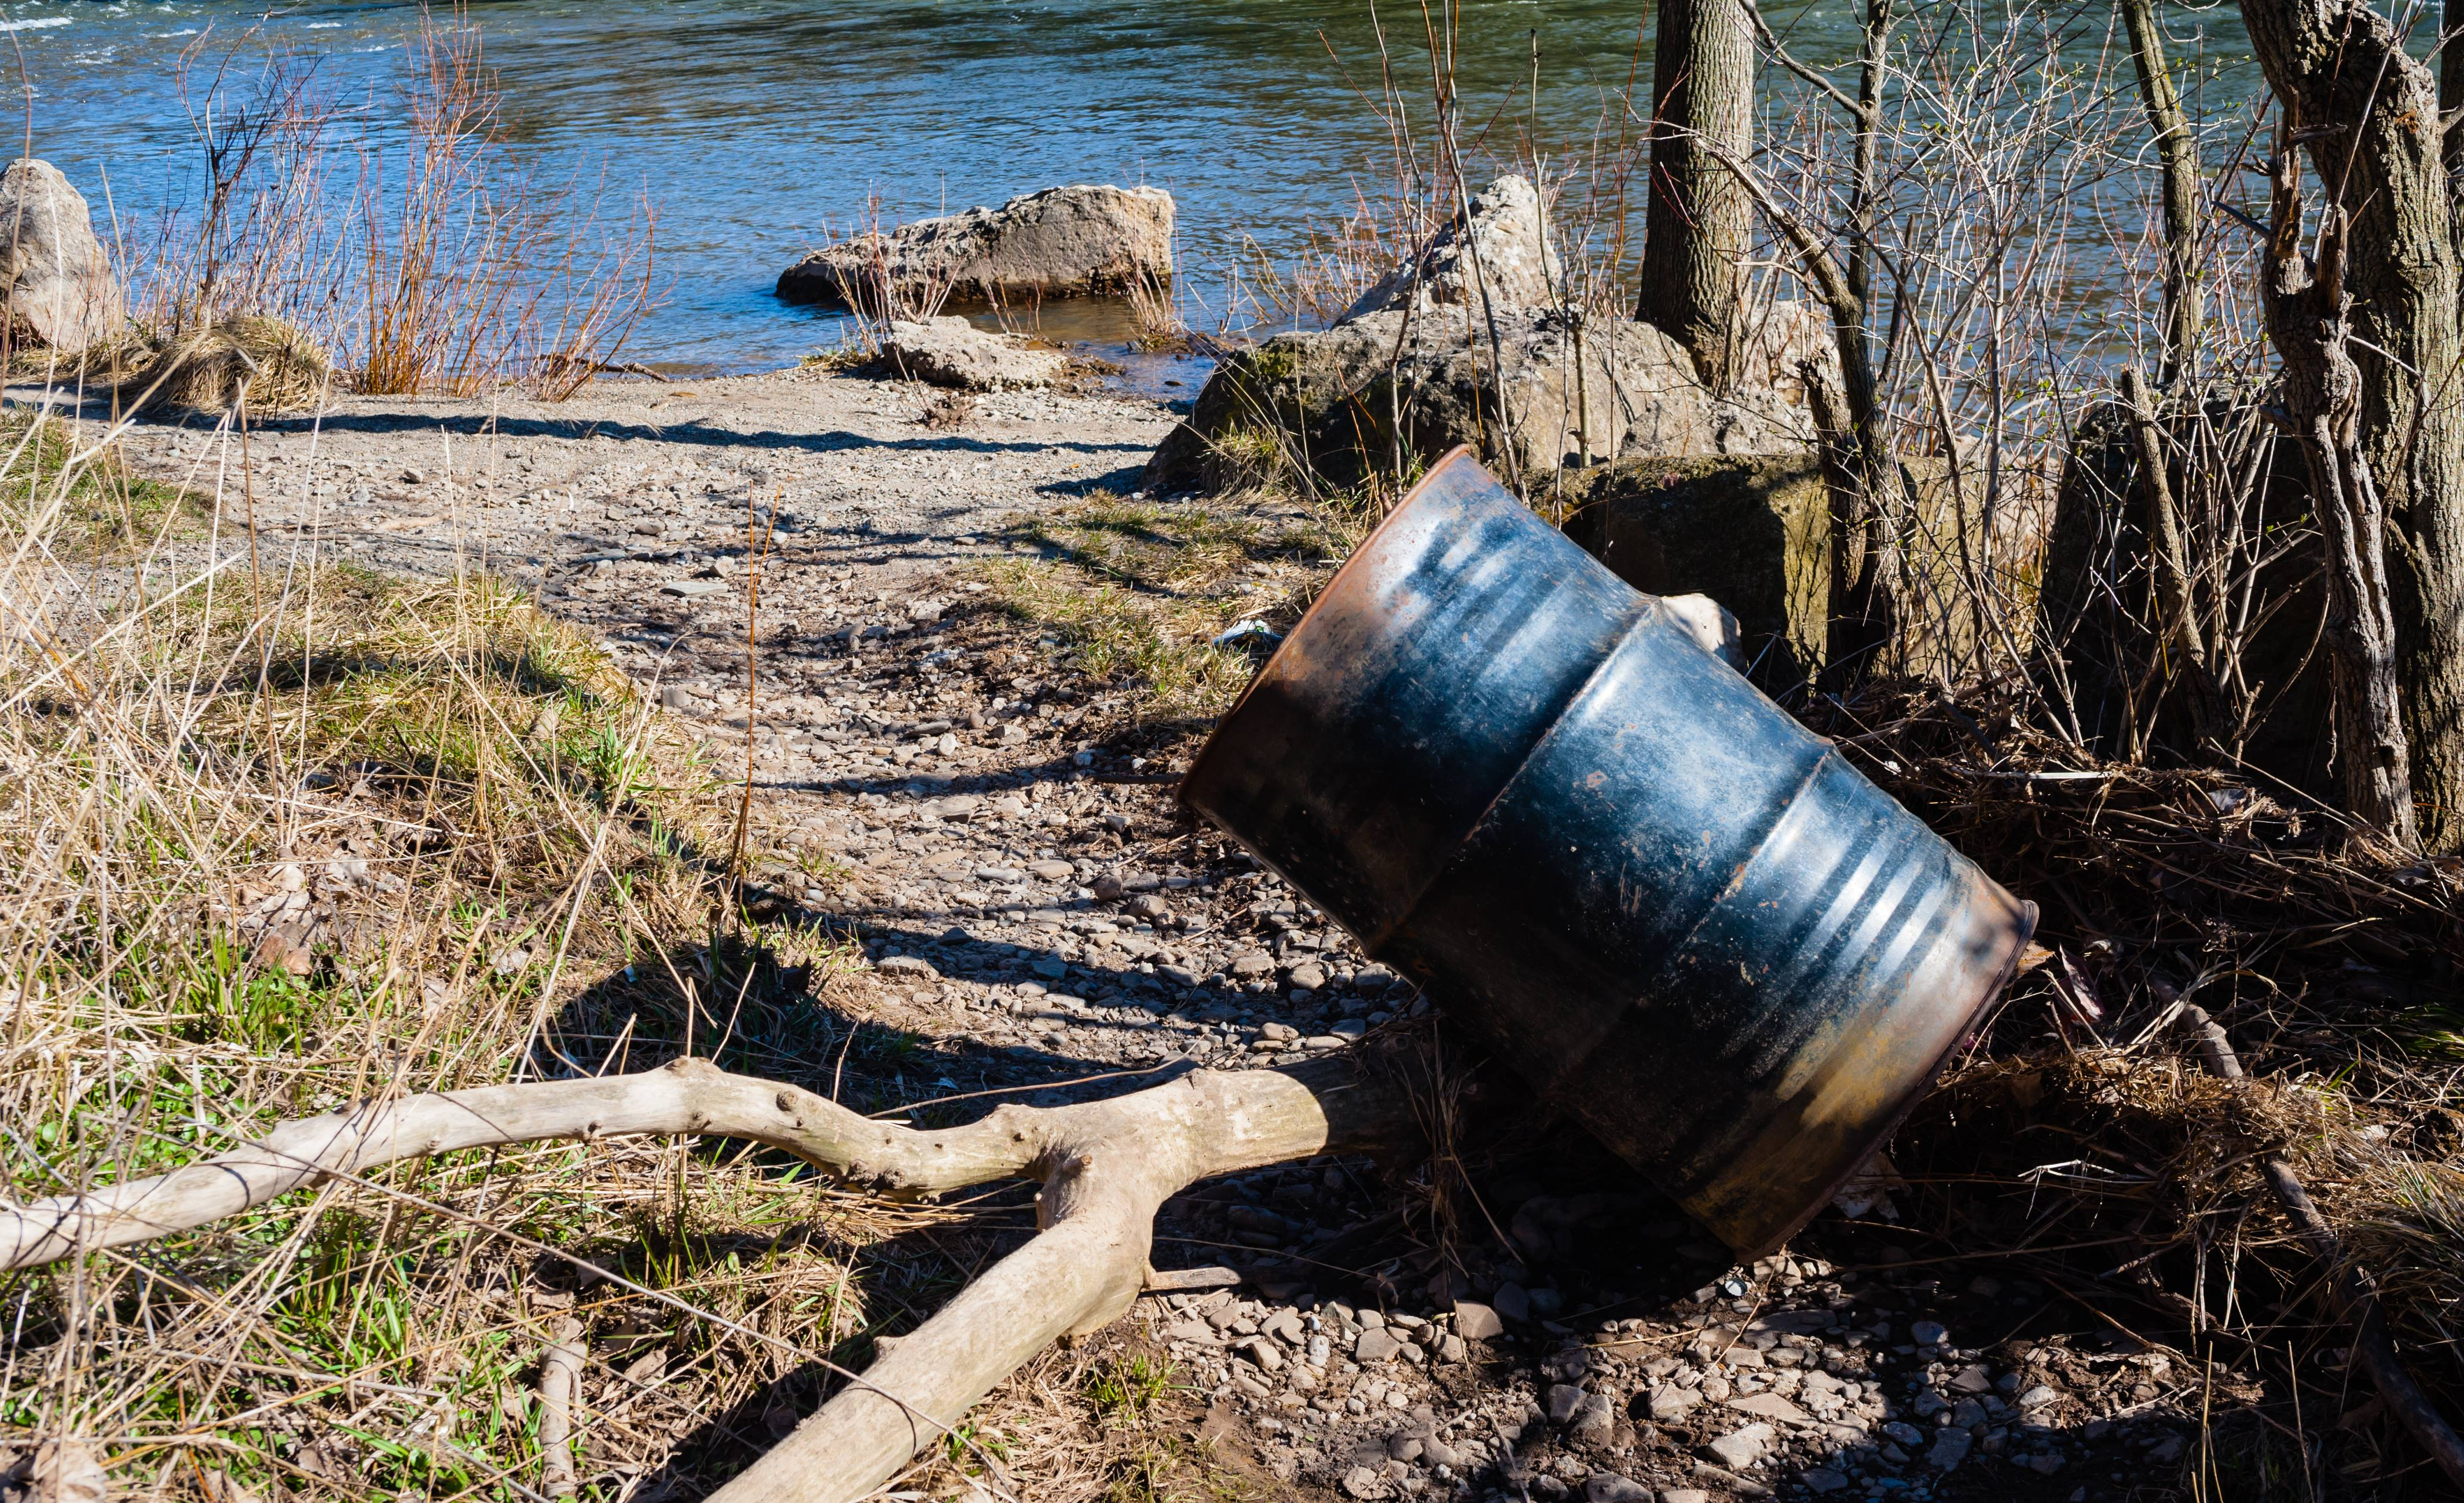 Partly rusted metal garbage can or drum leaning on branch on gravel path near river.